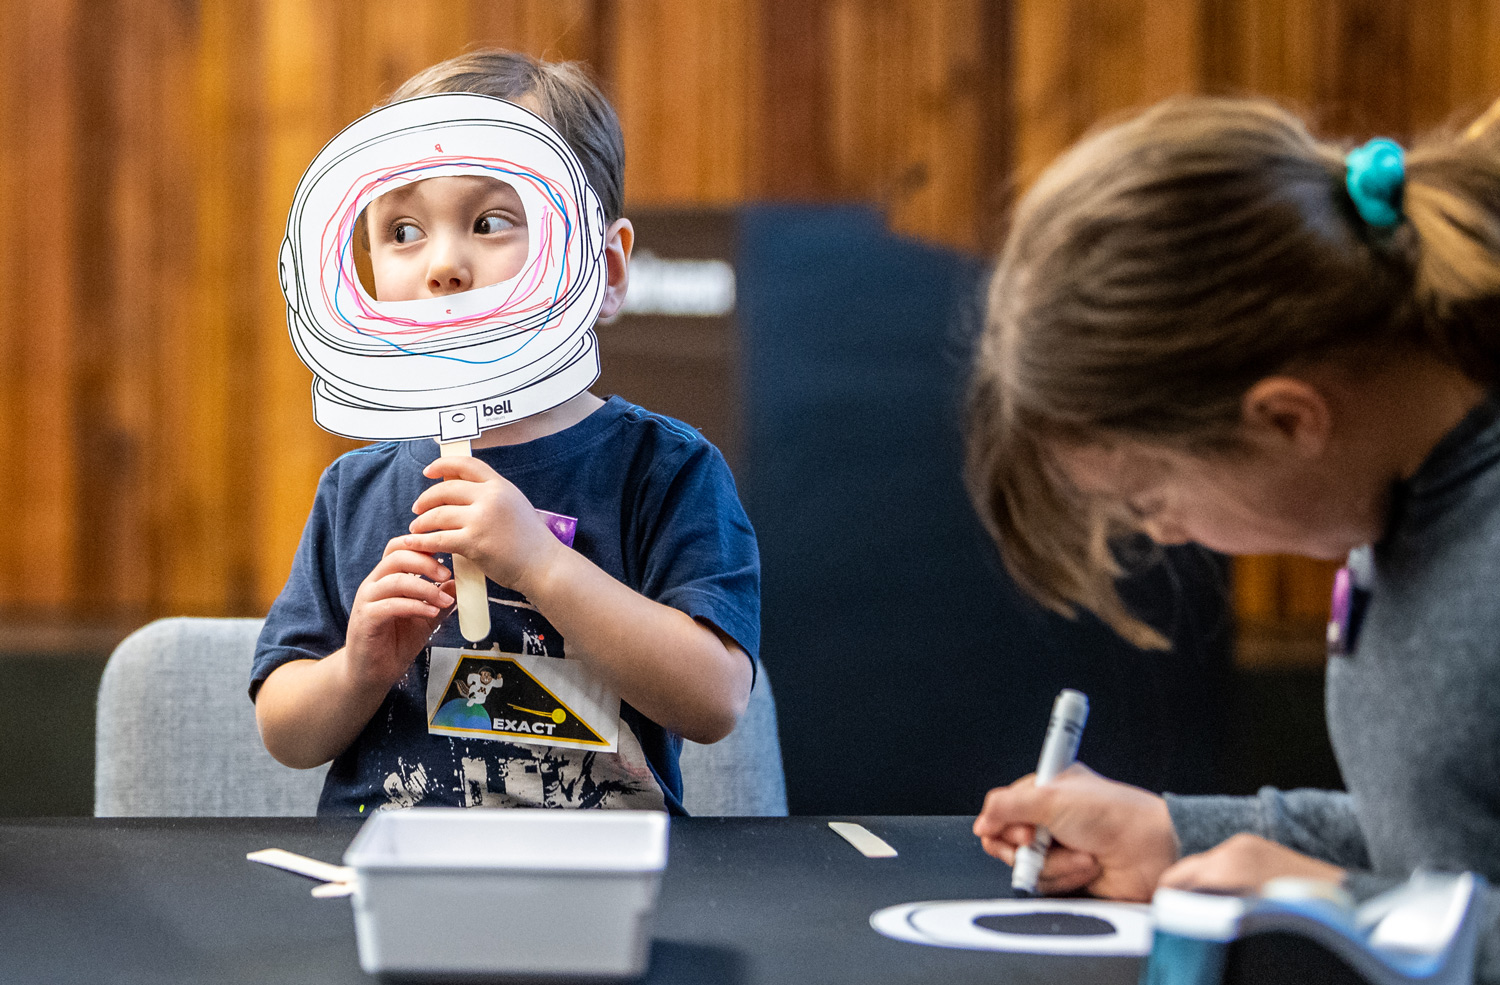 Young visitor shows off their astronaut mask